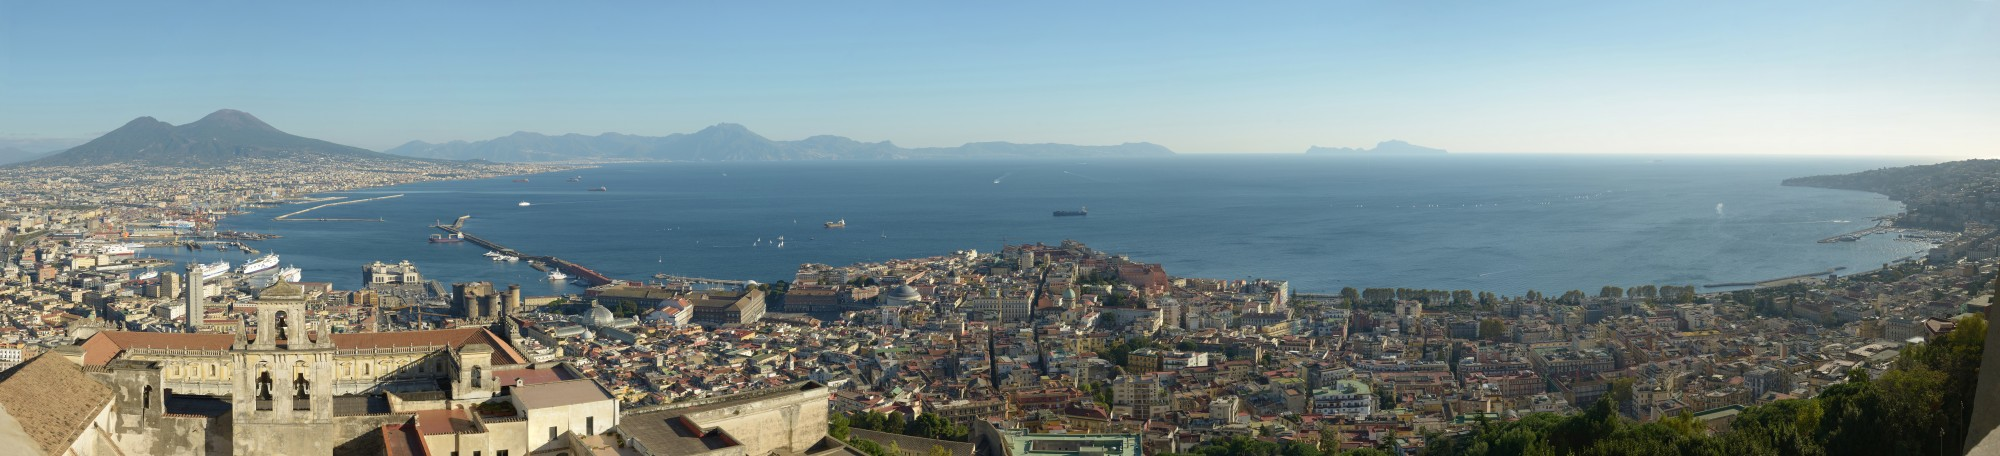 Naples from the Castello Sant Elmo with Abbazia San Martino